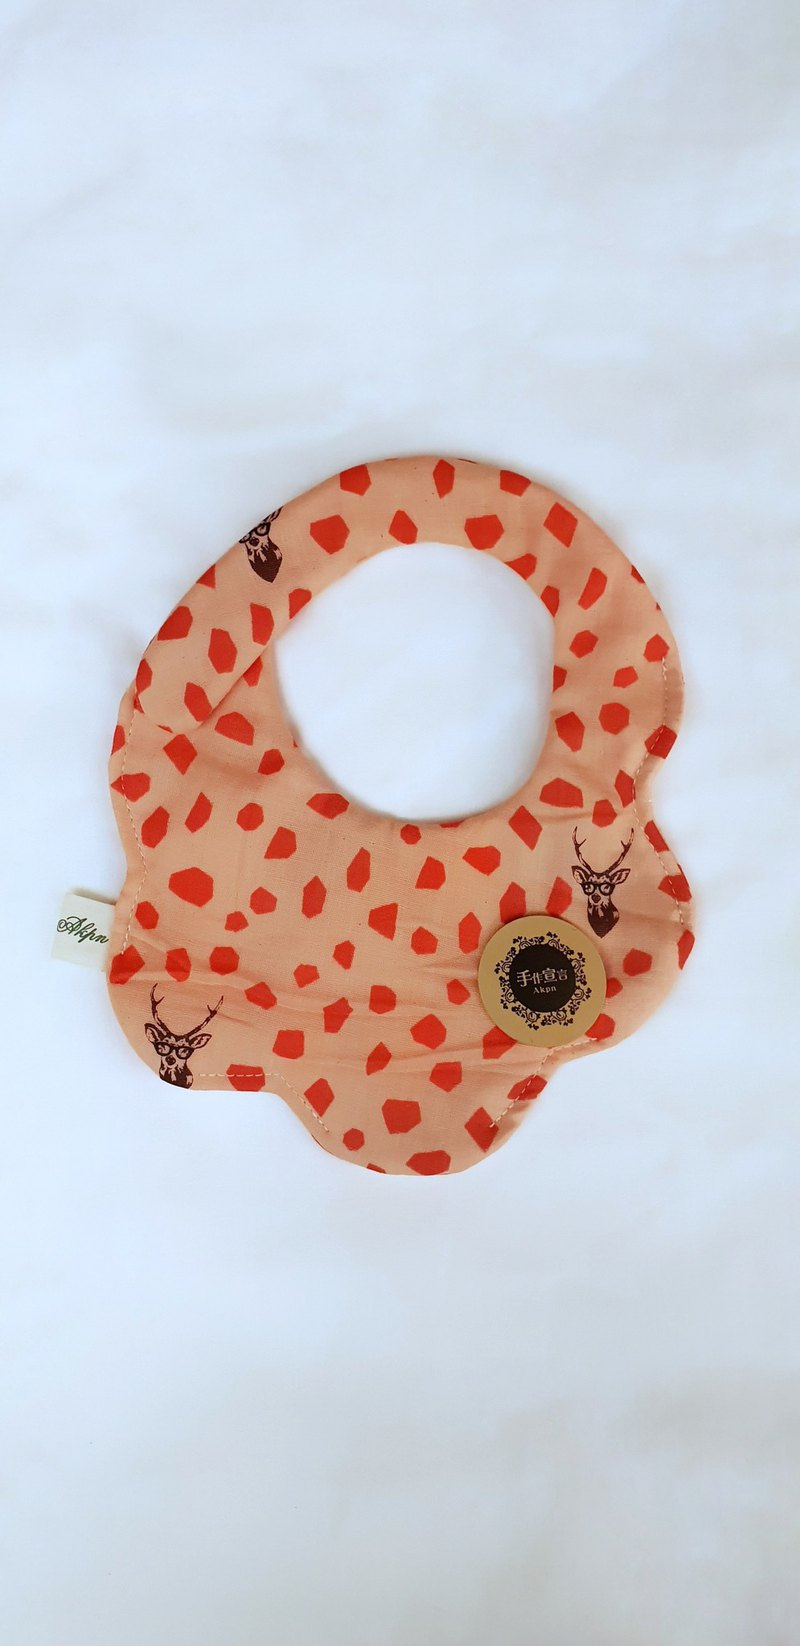 Gujia Yuezi designer cloth - powder skin orange - Sambar - eight layers of yarn 100% cotton shape bibs saliva towel